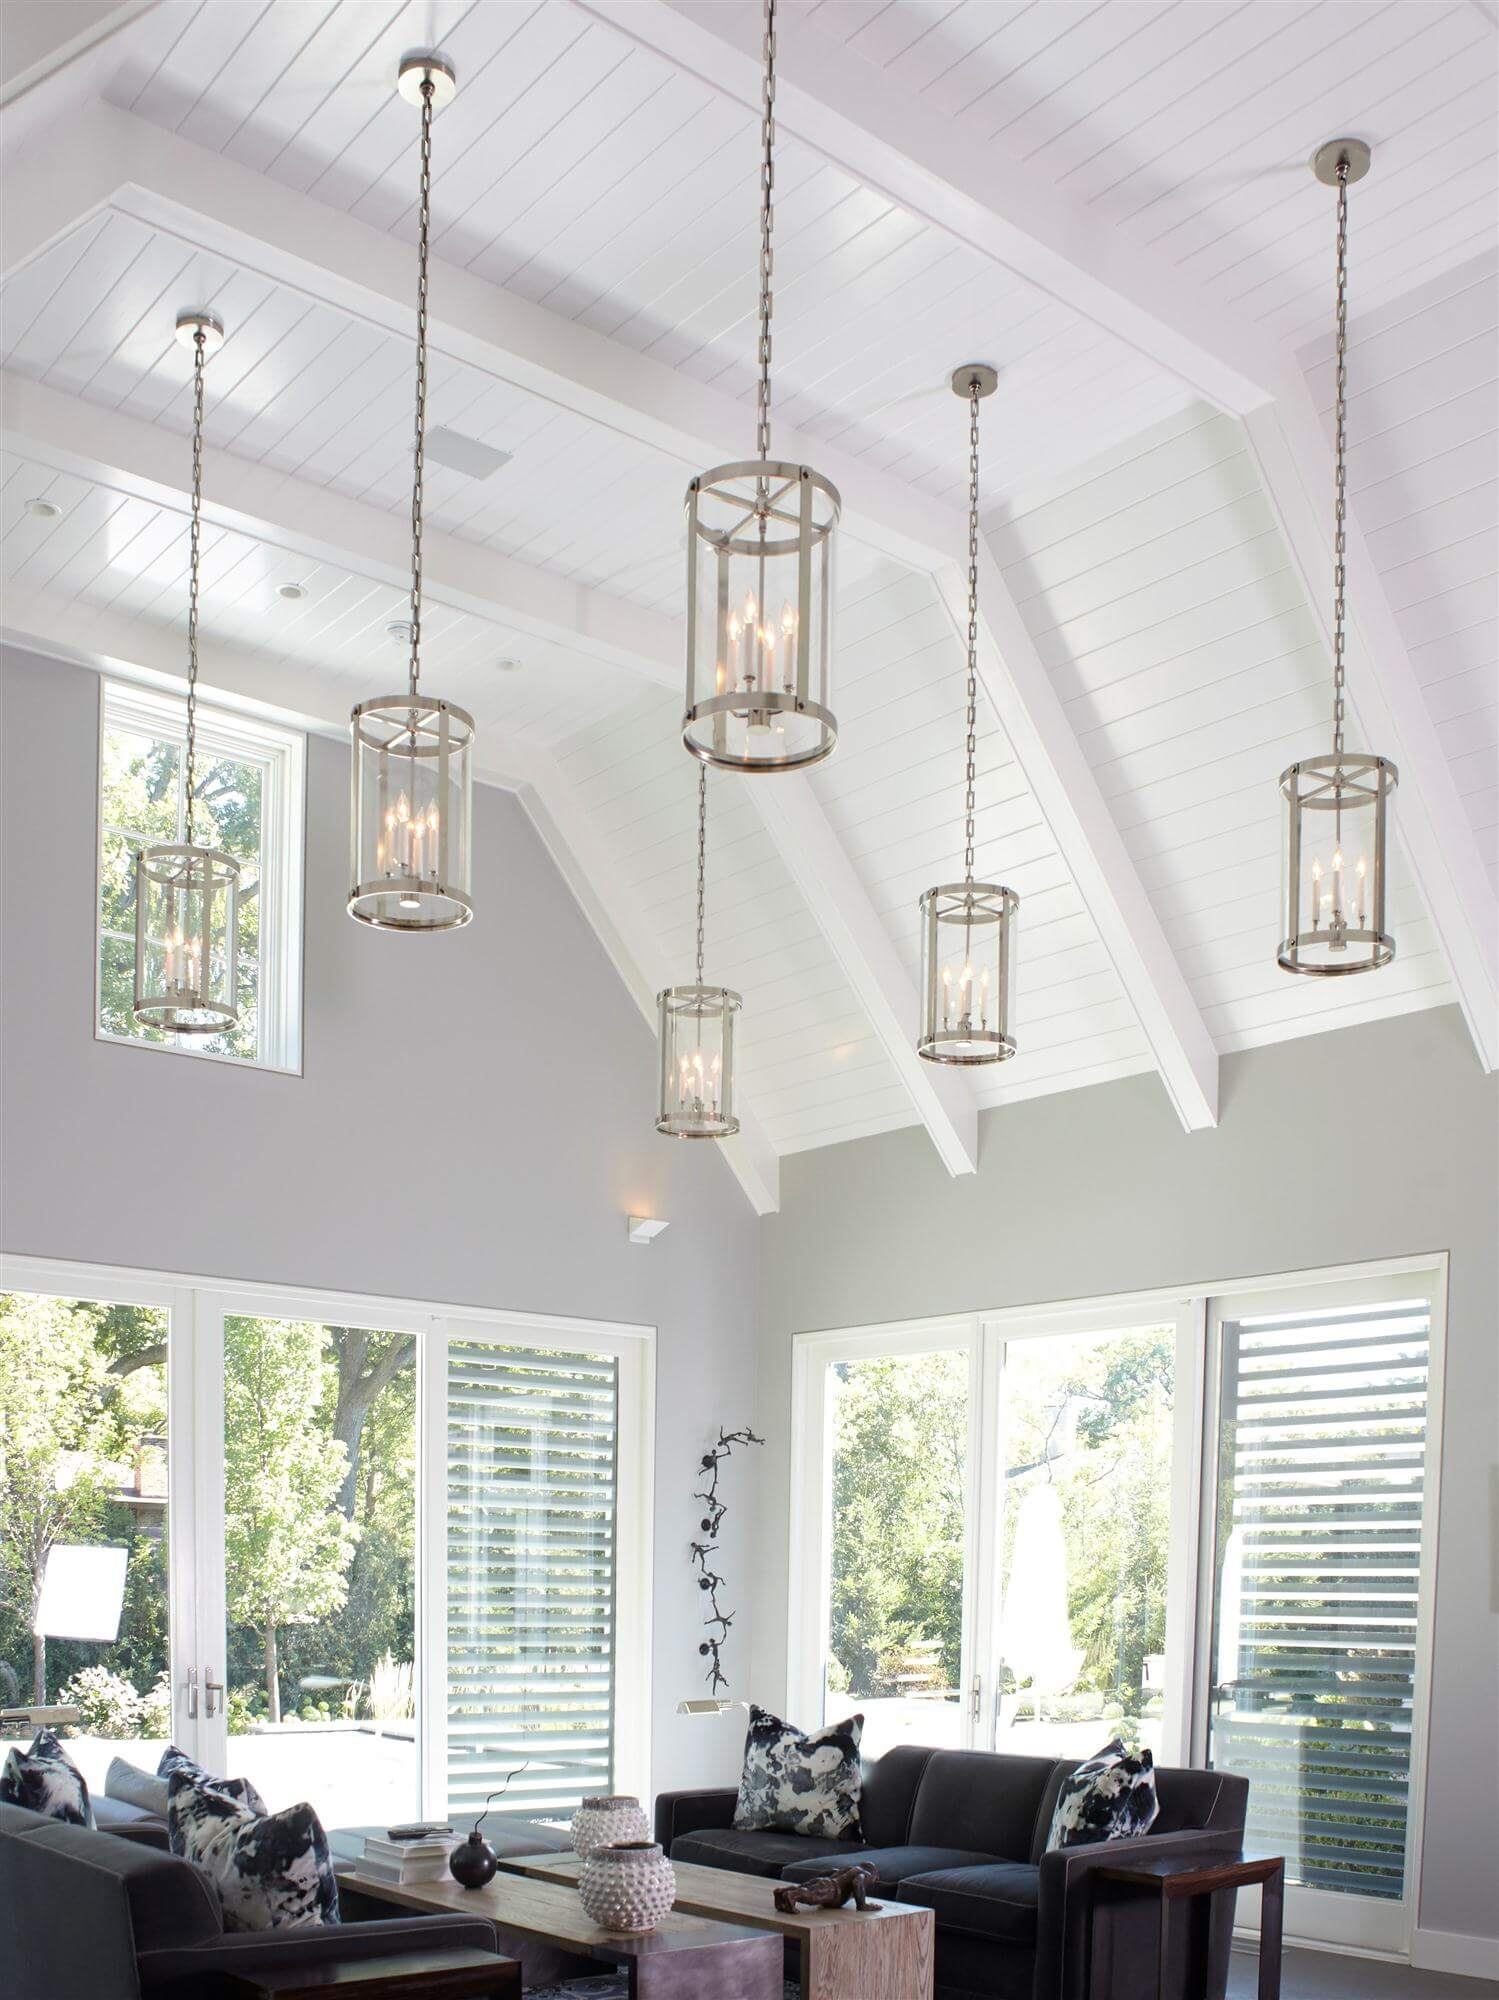 Contemporary Glass Cylinder Lantern Pendant Lights